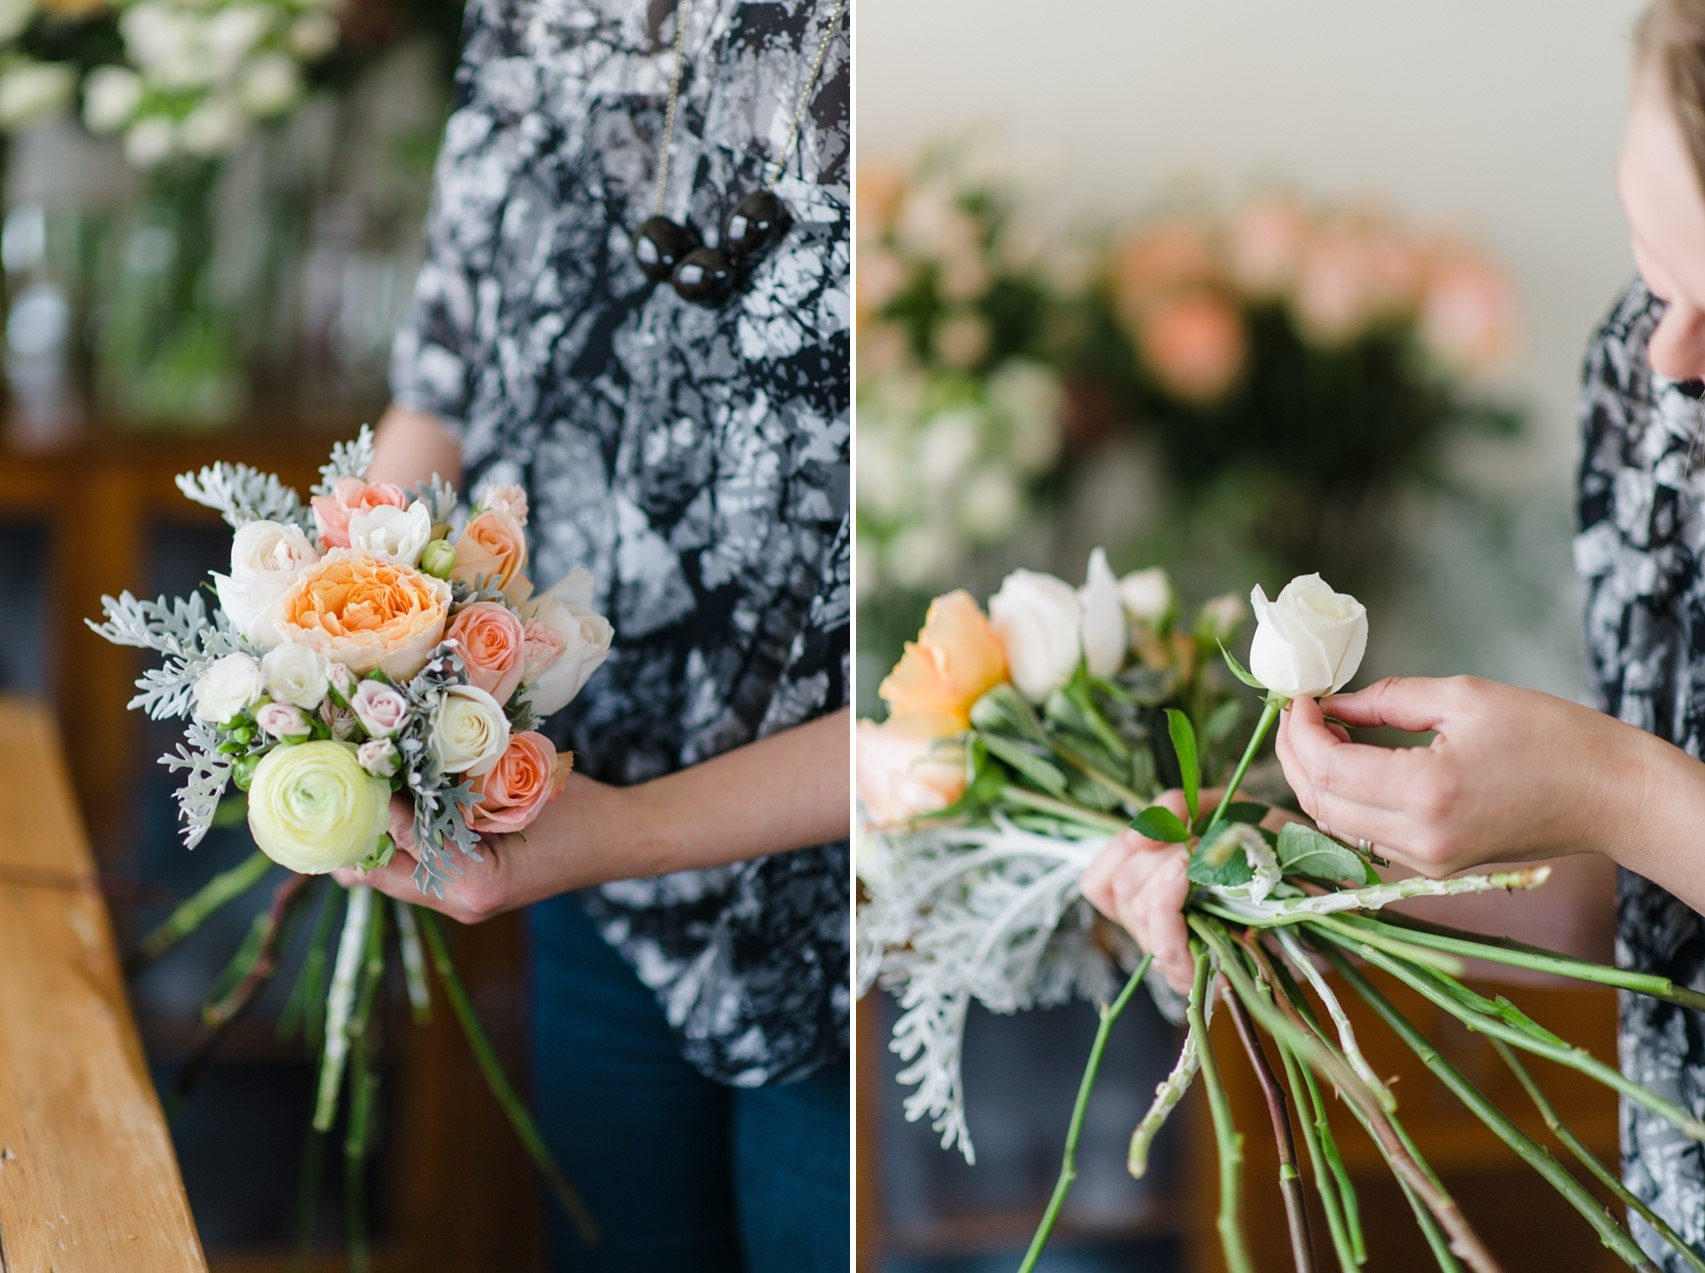 Wedding Bouquet Recipe ~ A Pretty Spring Bouquet of Roses